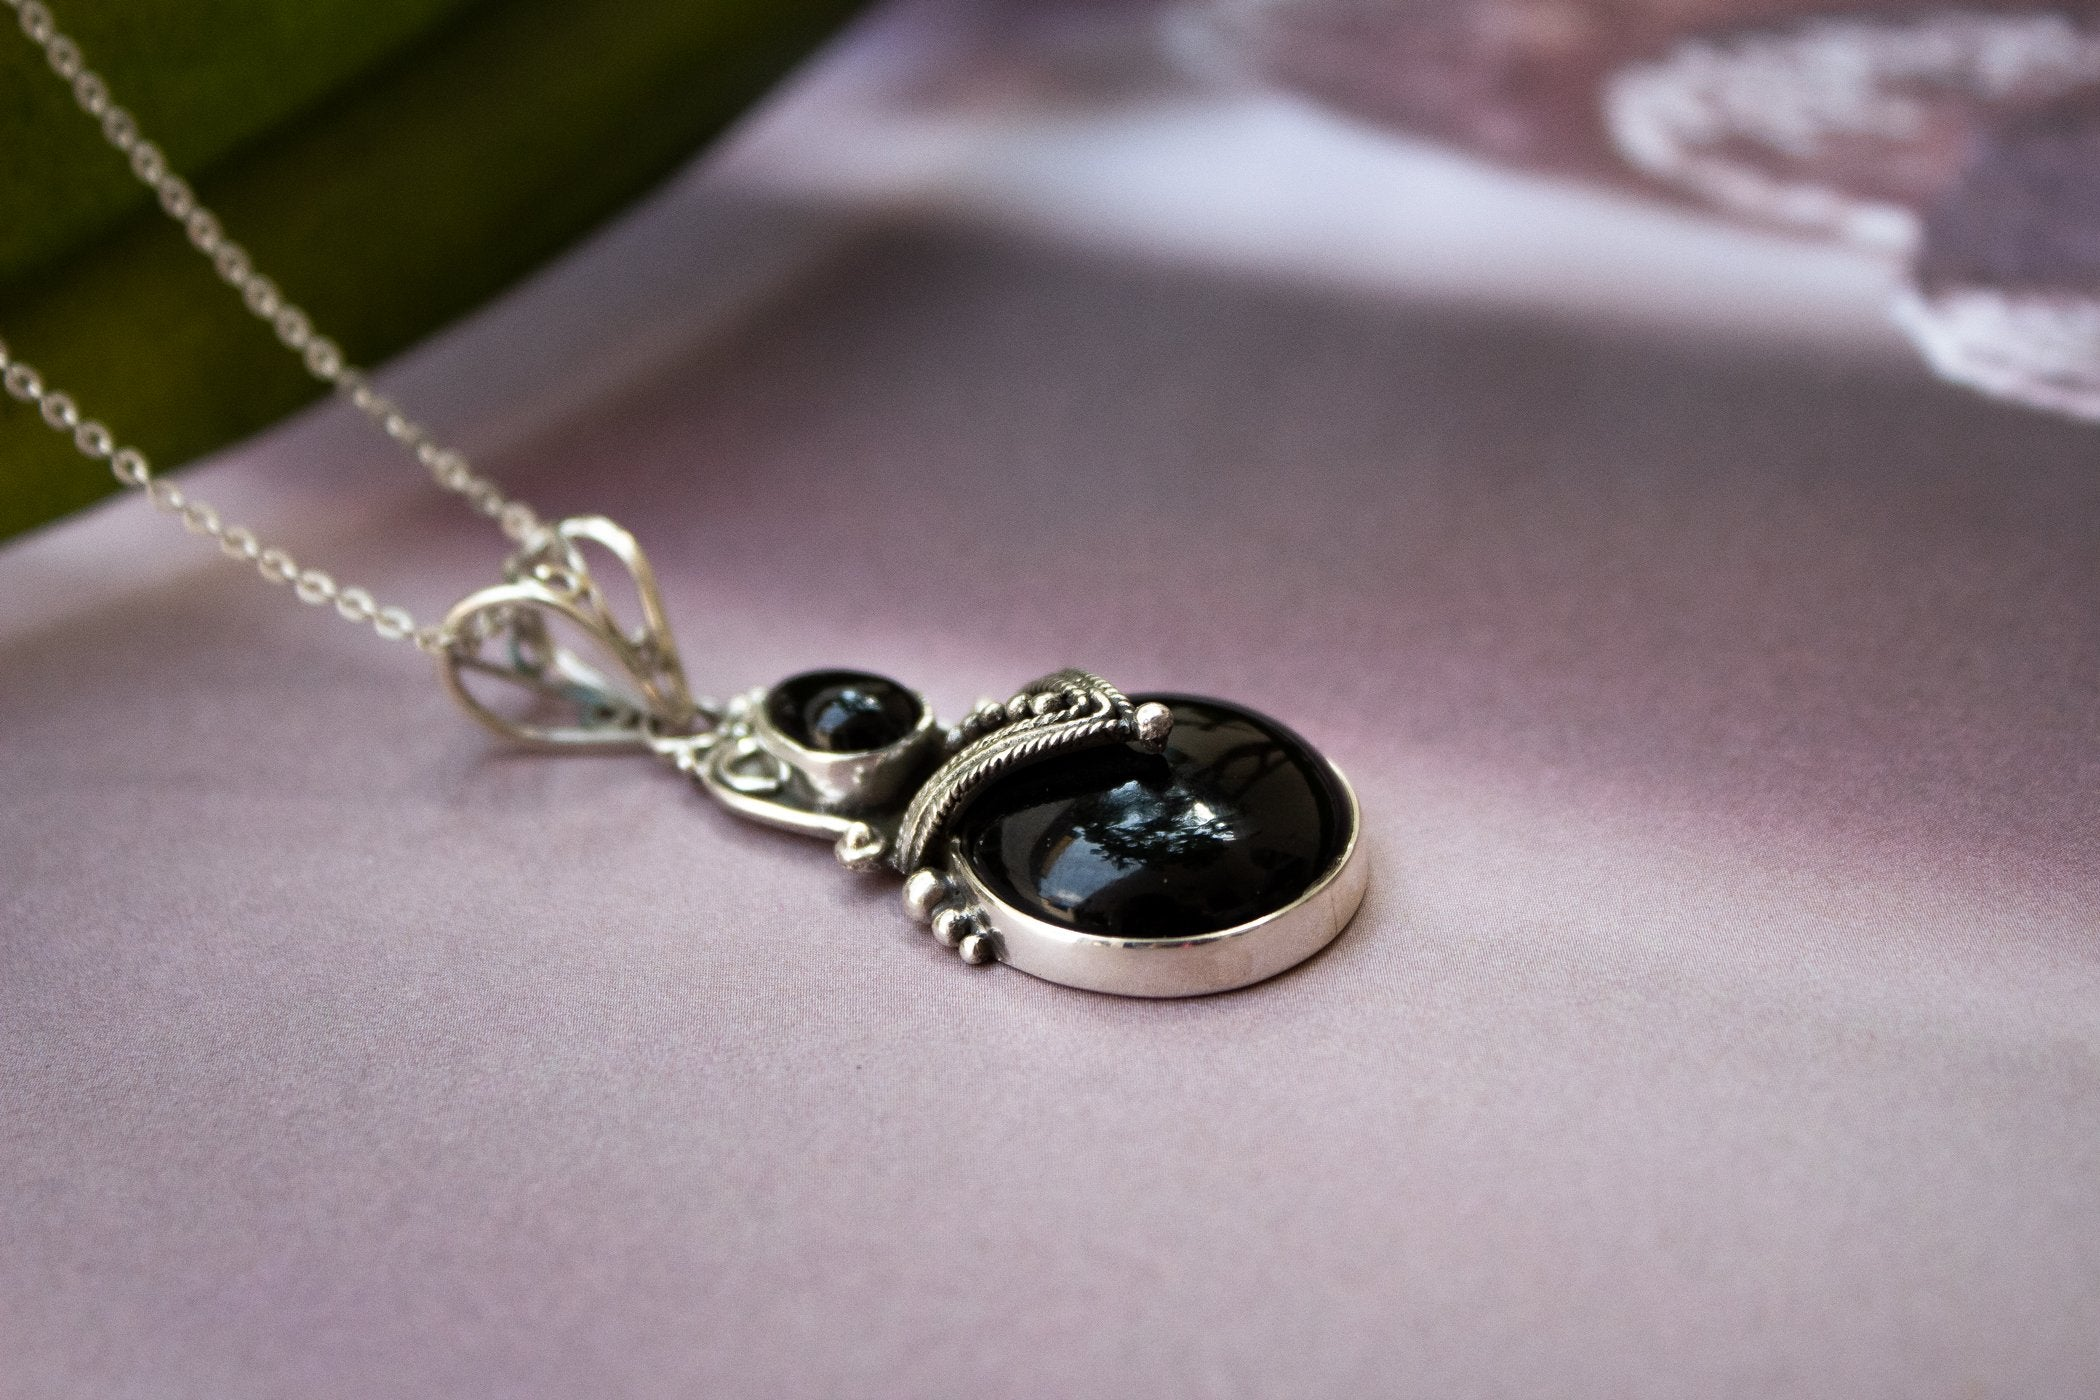 Natural Black Onyx Pendant with Sterling Silver